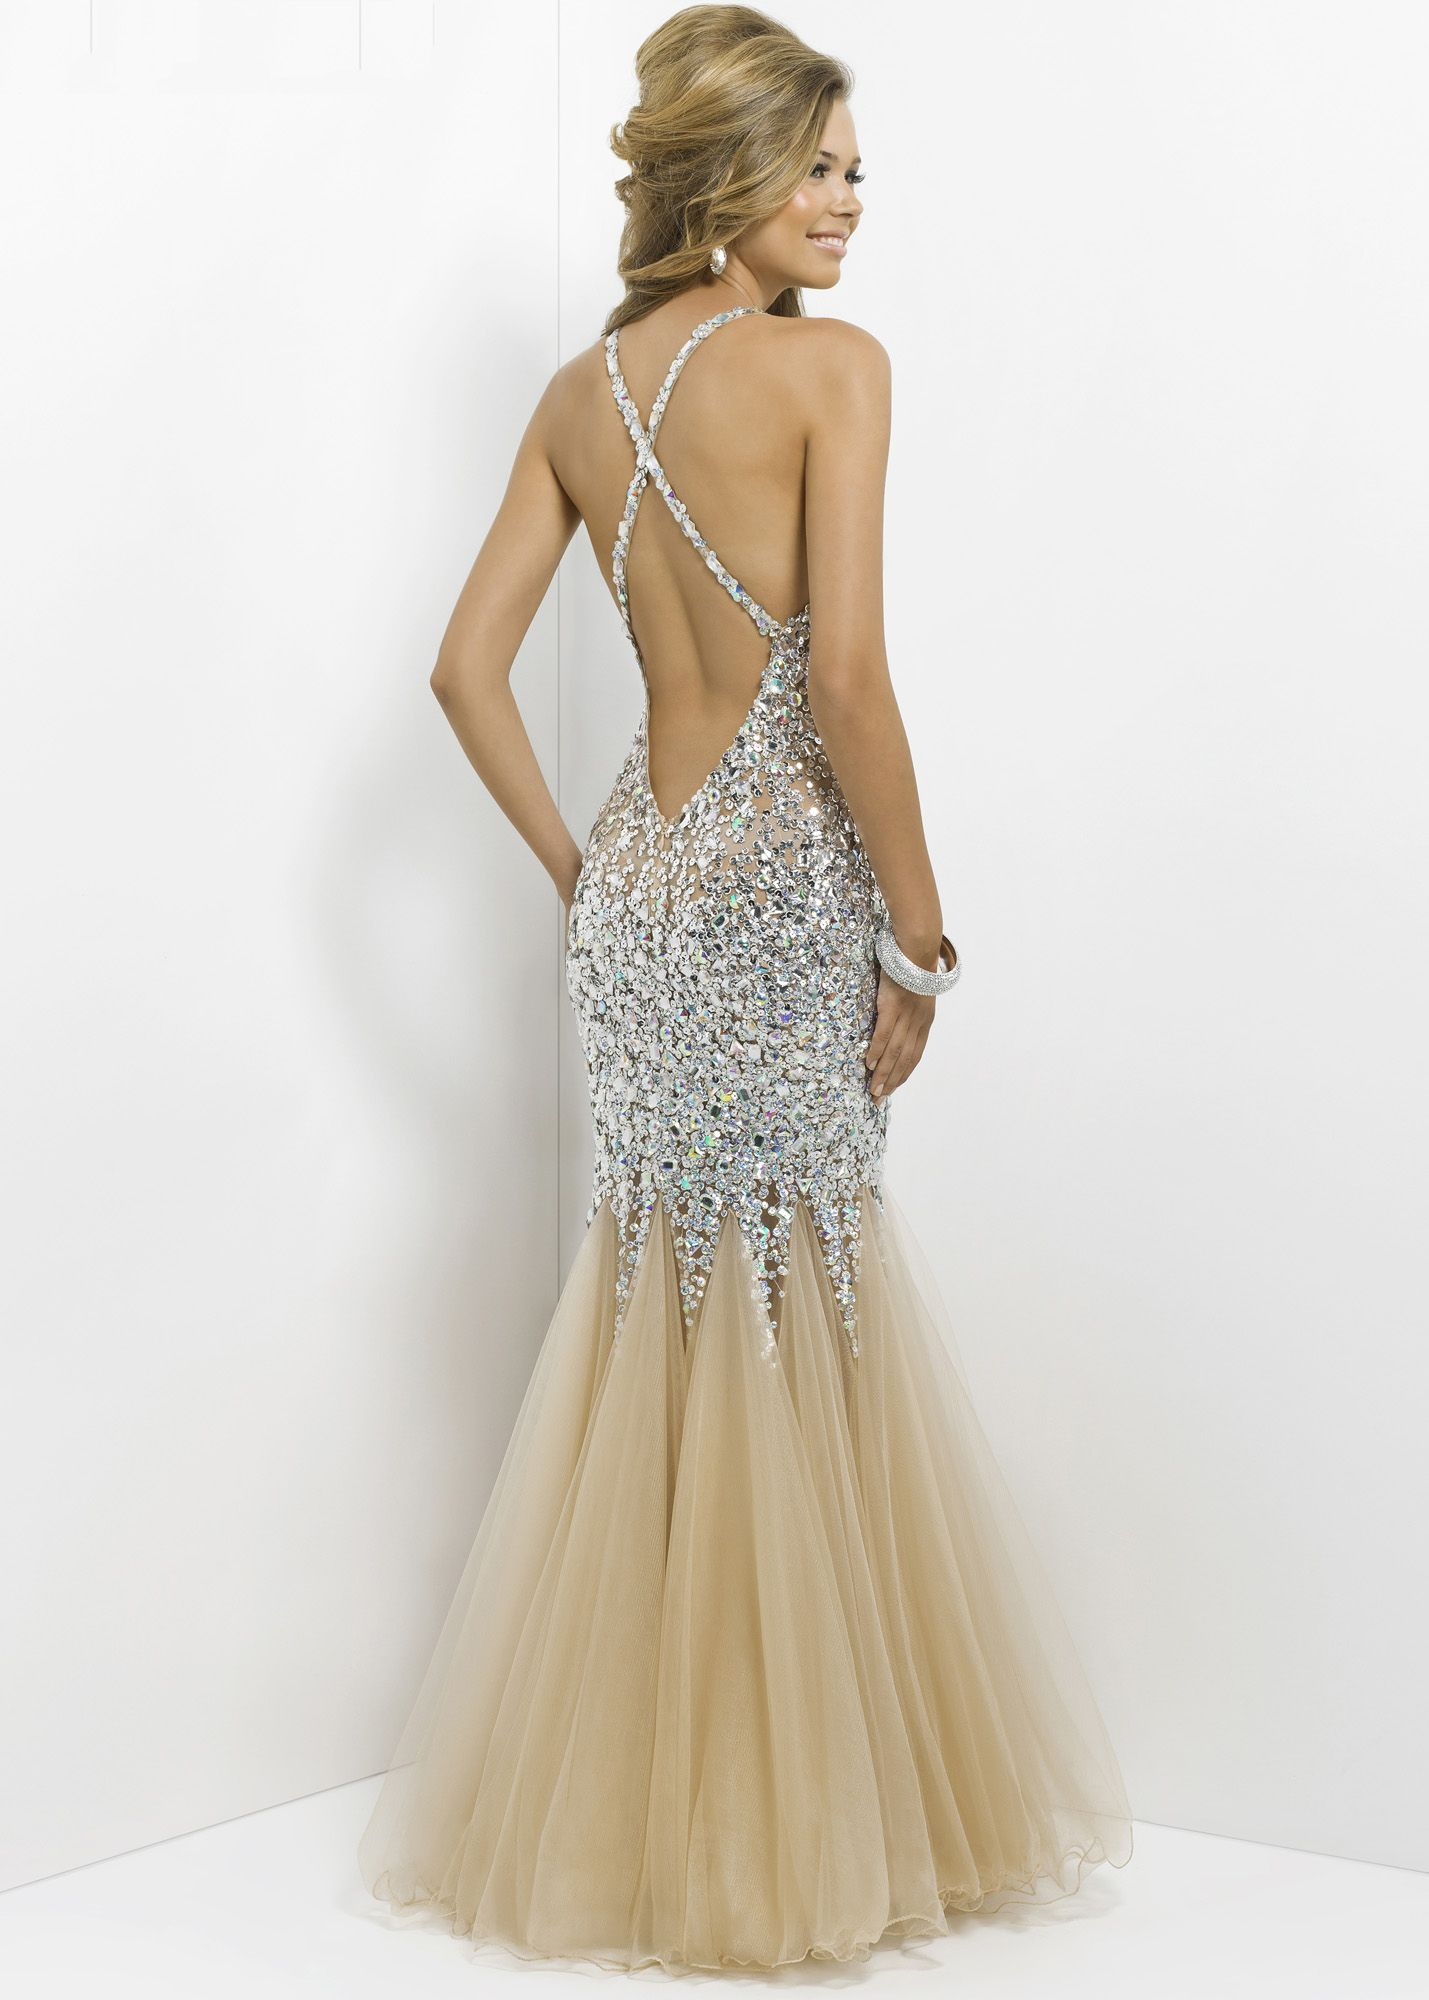 988f14a3f82 Sexy beaded open back nude prom dress at RissyRoos.com. (Blush 9702 ...